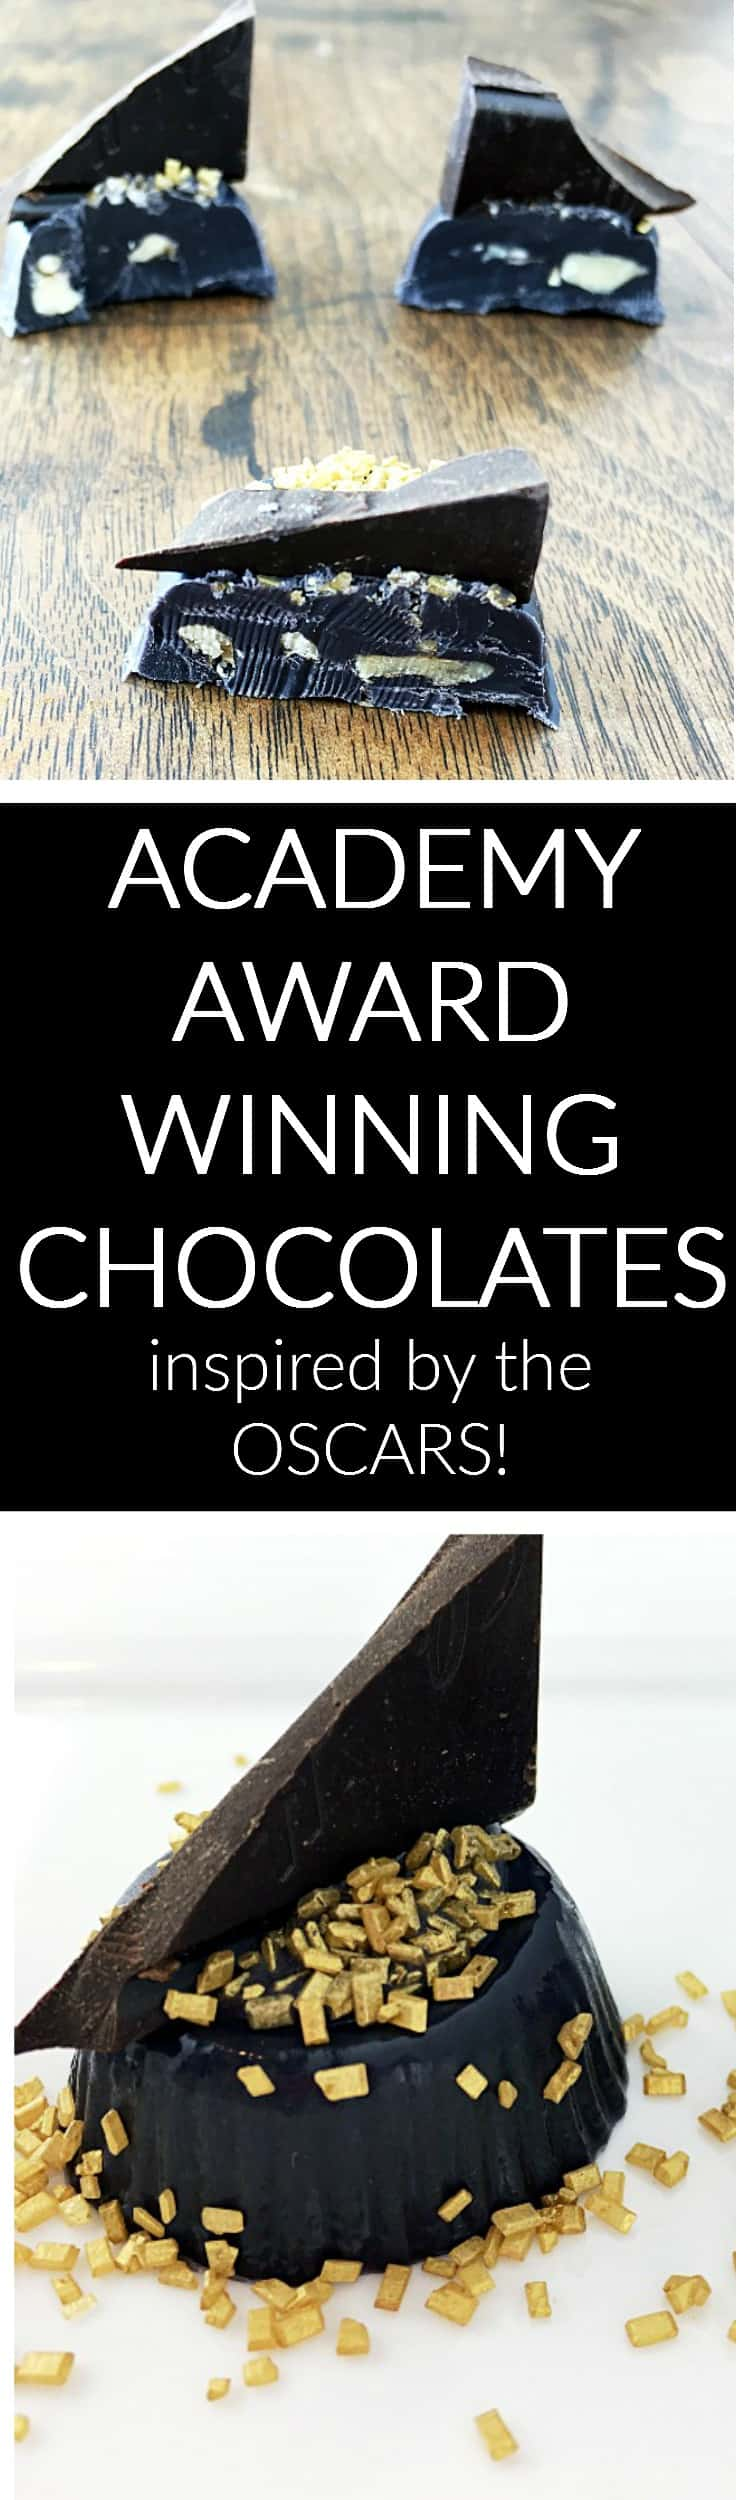 chocolates inspired by the oscars